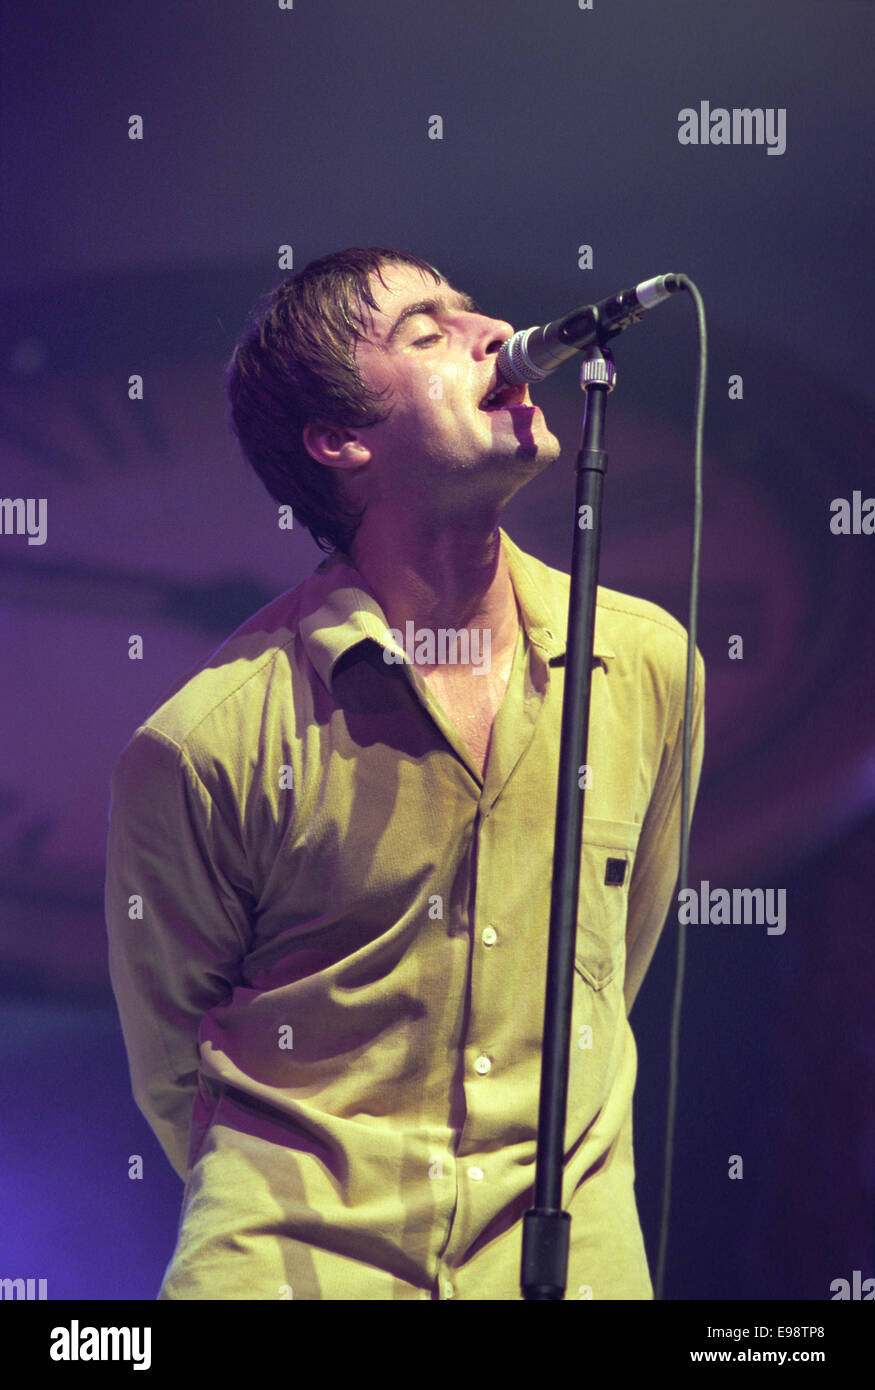 Liam Gallagher and Oasis in Aberdeen, Scotland, in 1997. - Stock Image